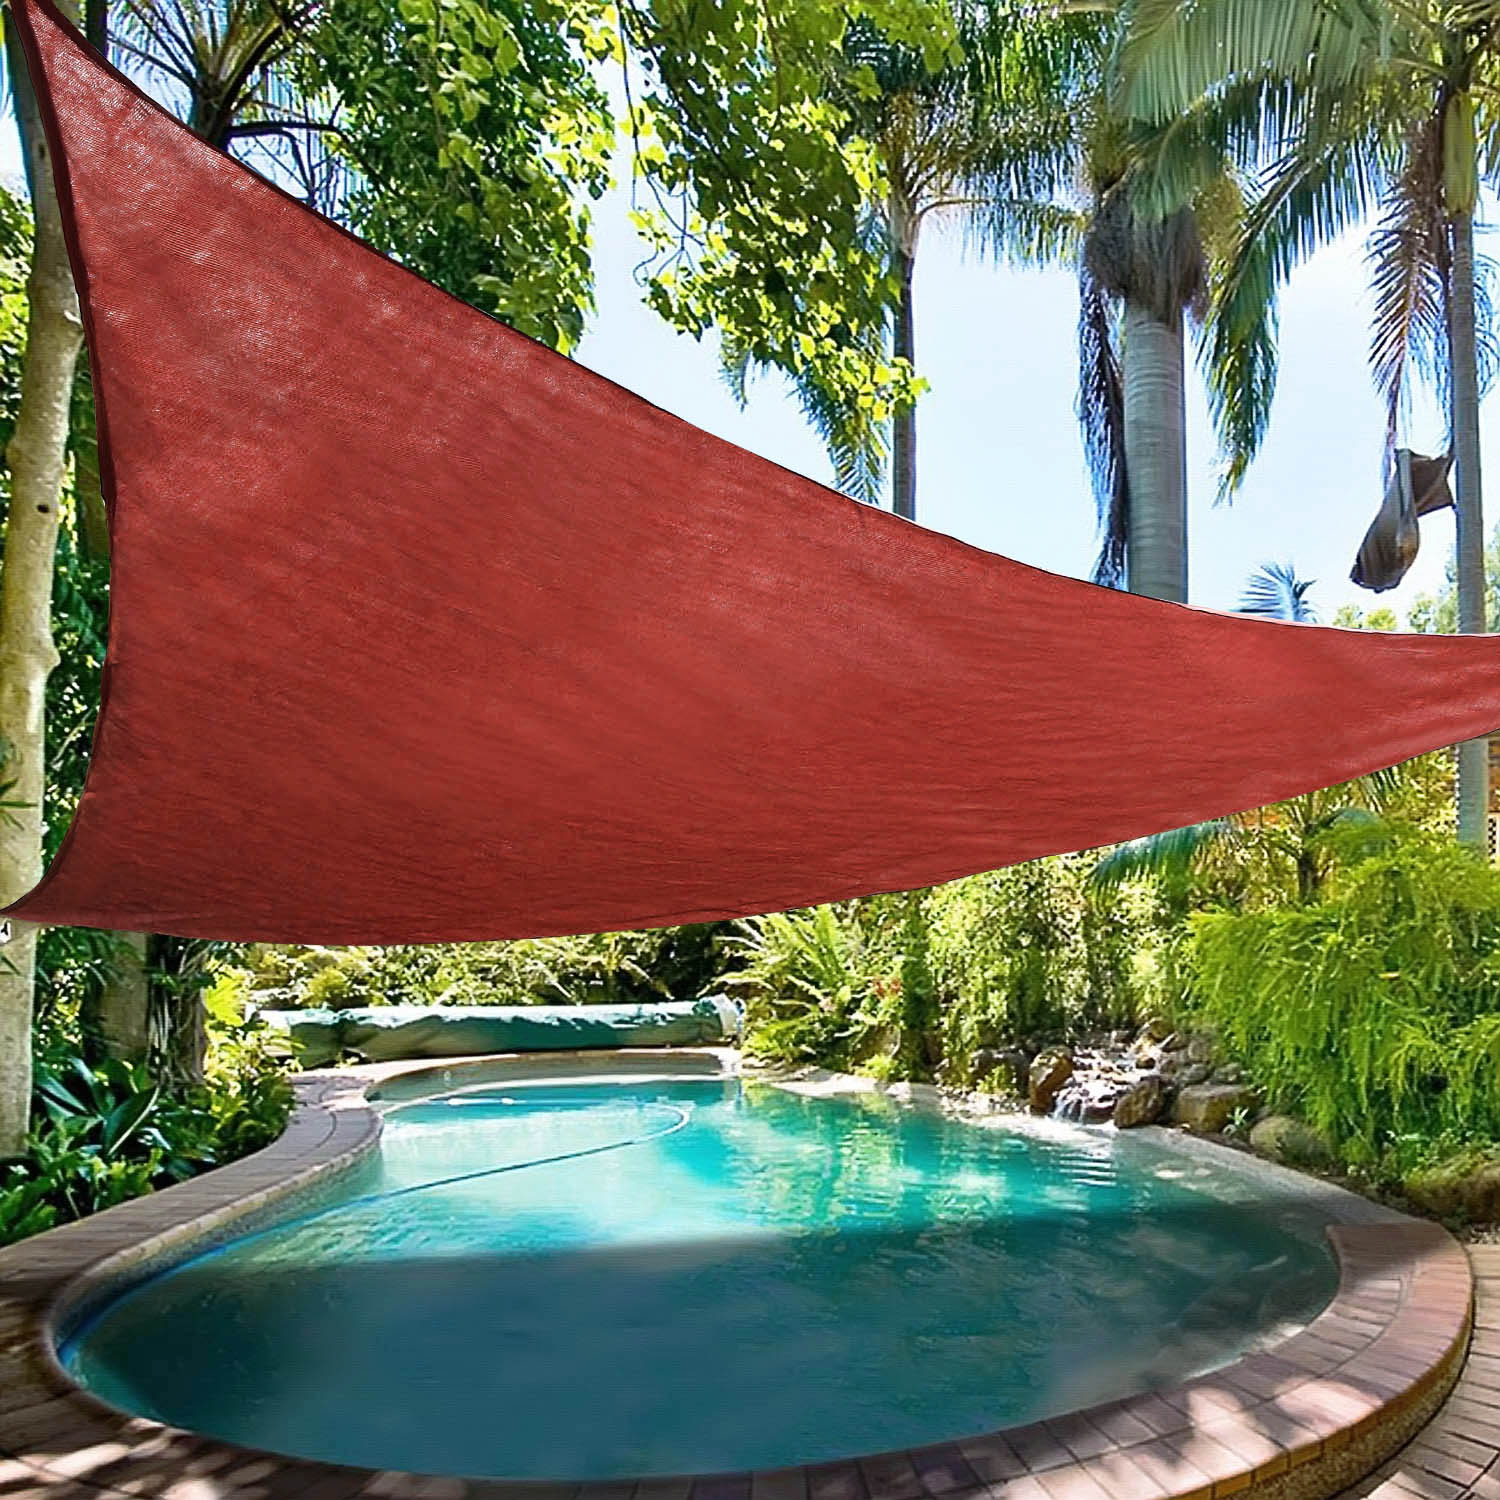 Mllieroo 12' x 12' x 12' Triangle Sand UV Block Sun Shade Sail Perfect for Outdoor Patio Garden,Red